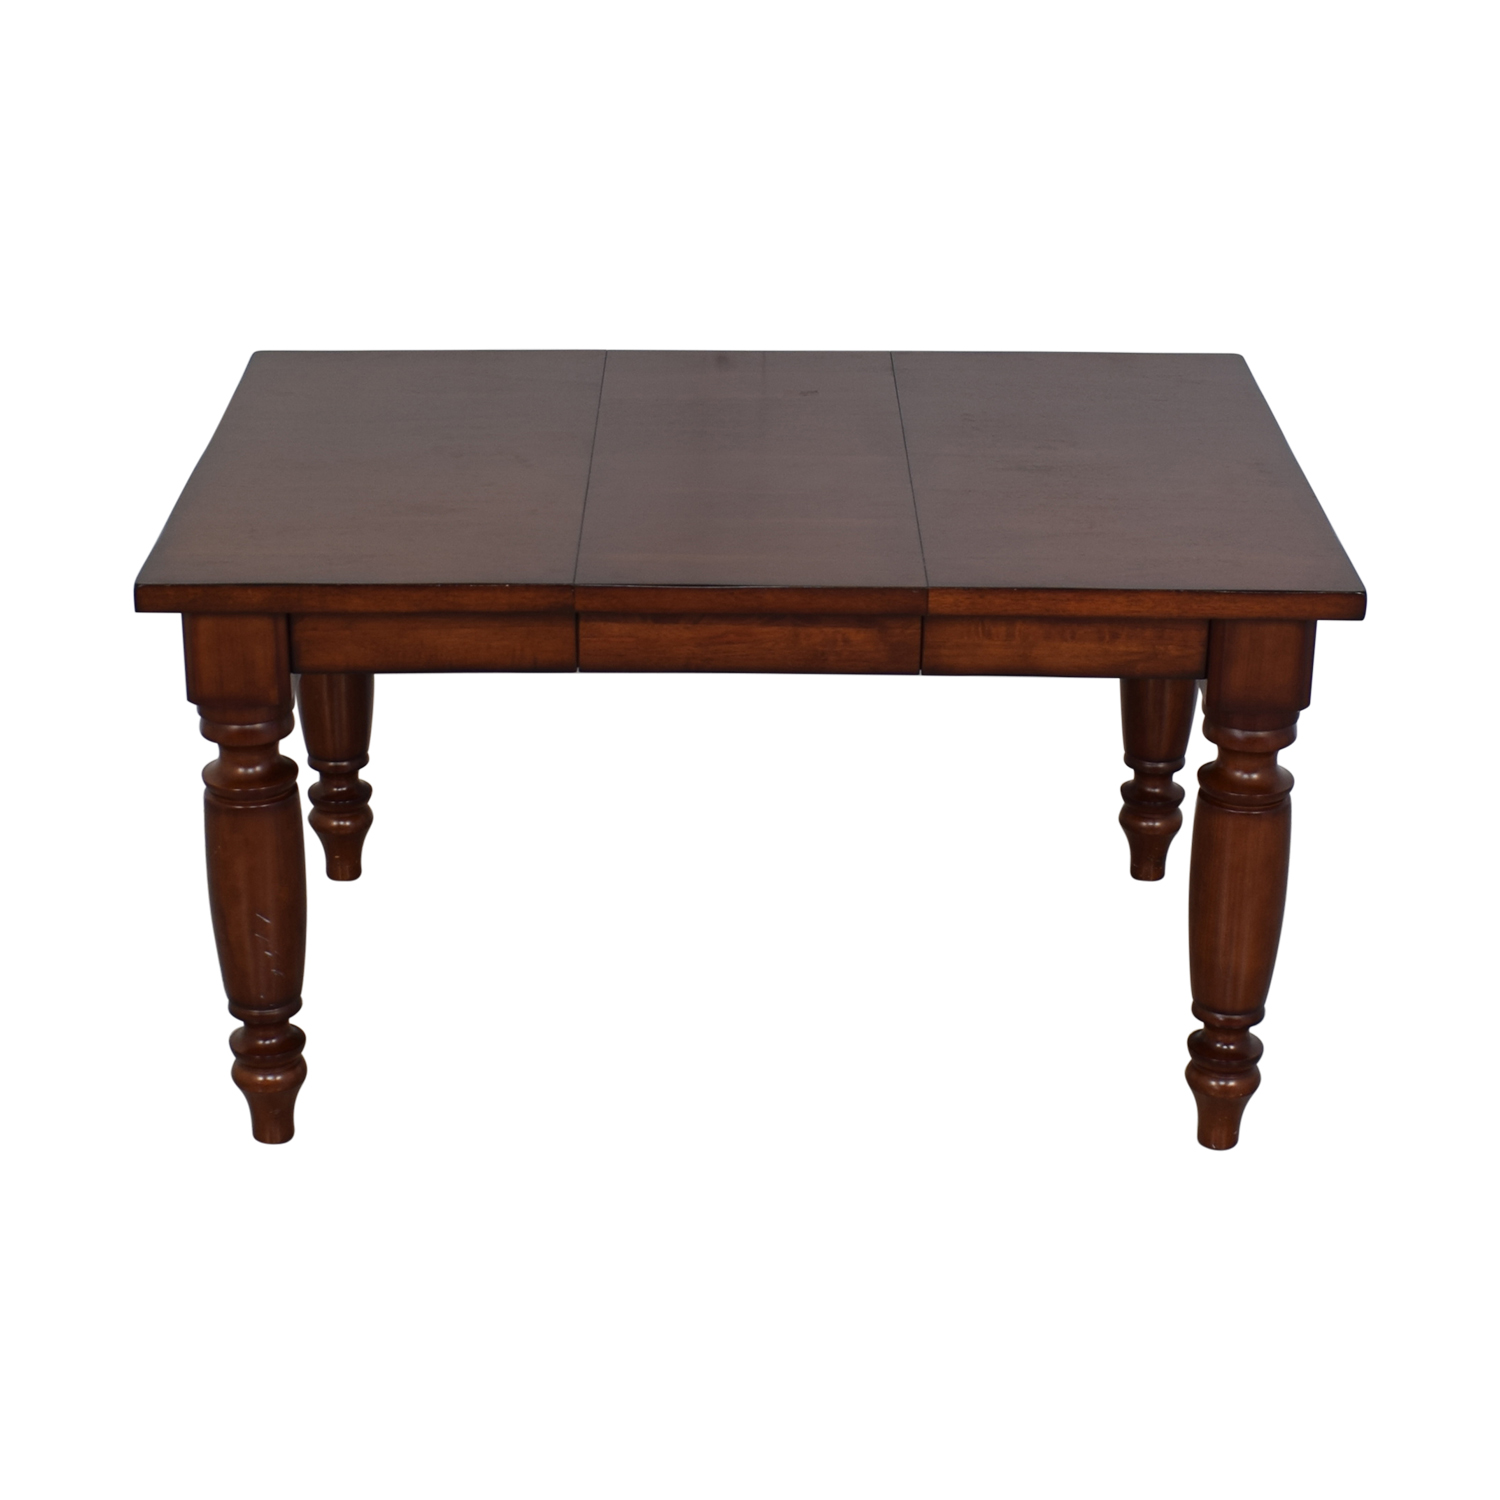 Pottery Barn Sumner Extending Dining Table / Tables